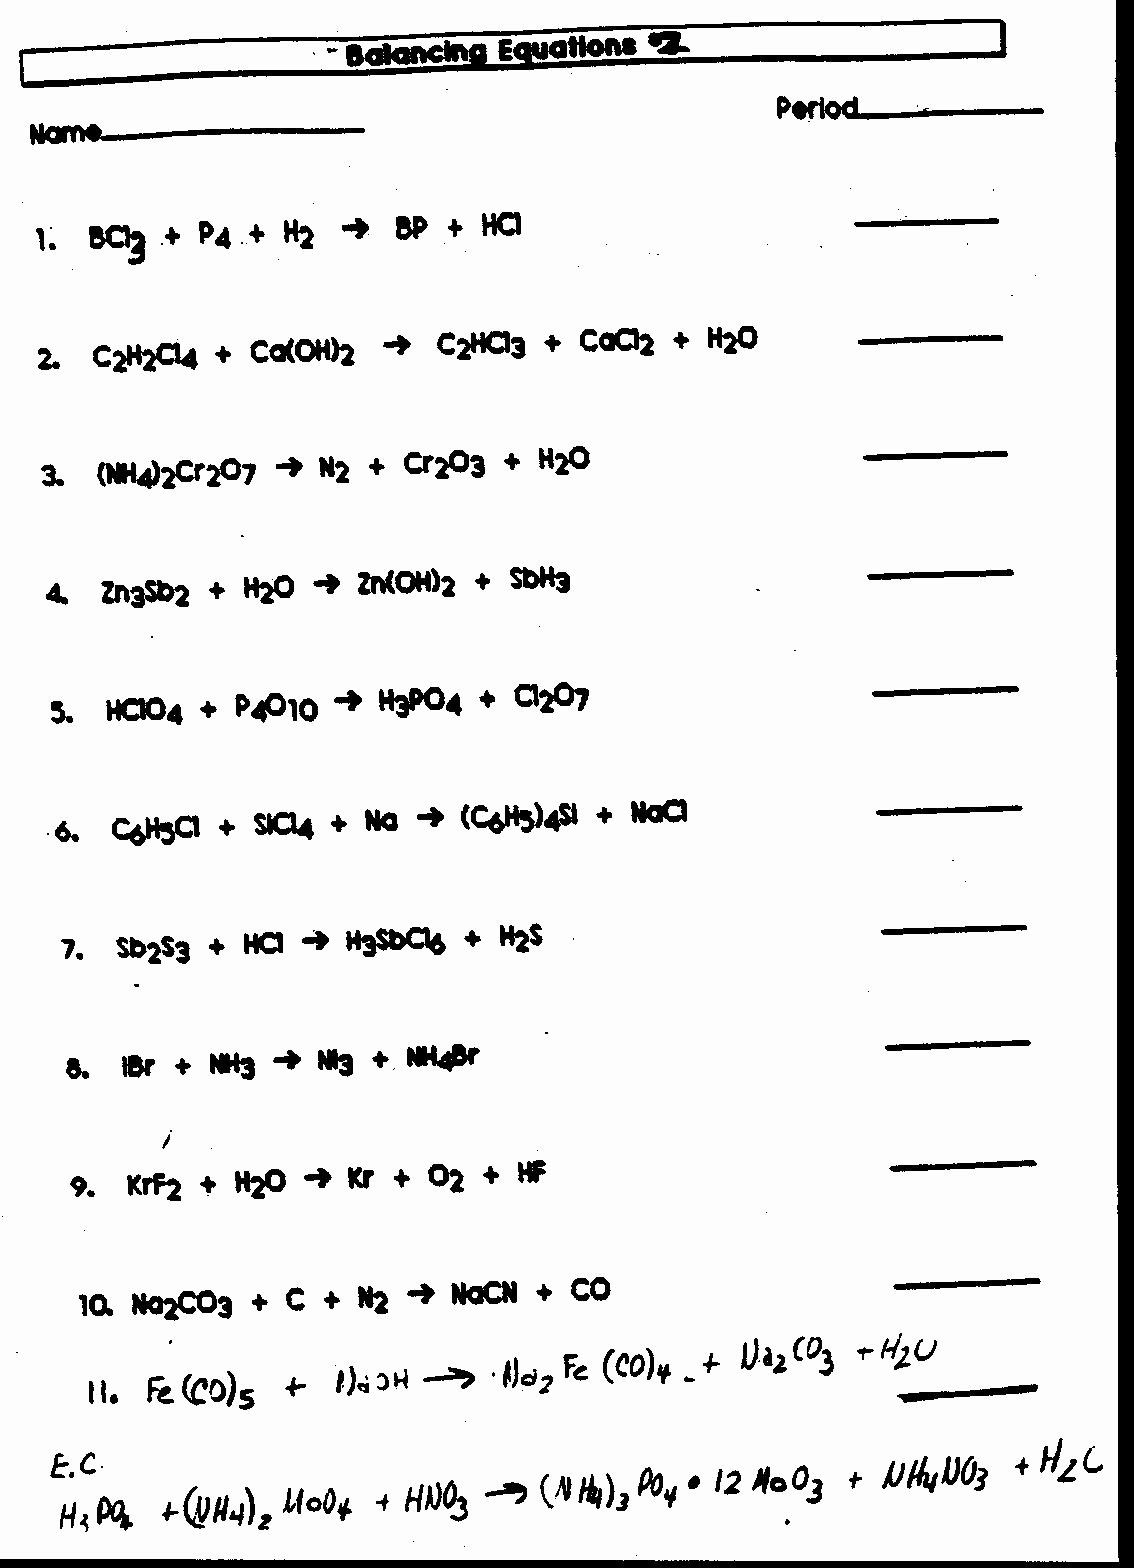 Balancing Chemical Equation Worksheet  Chessmuseum